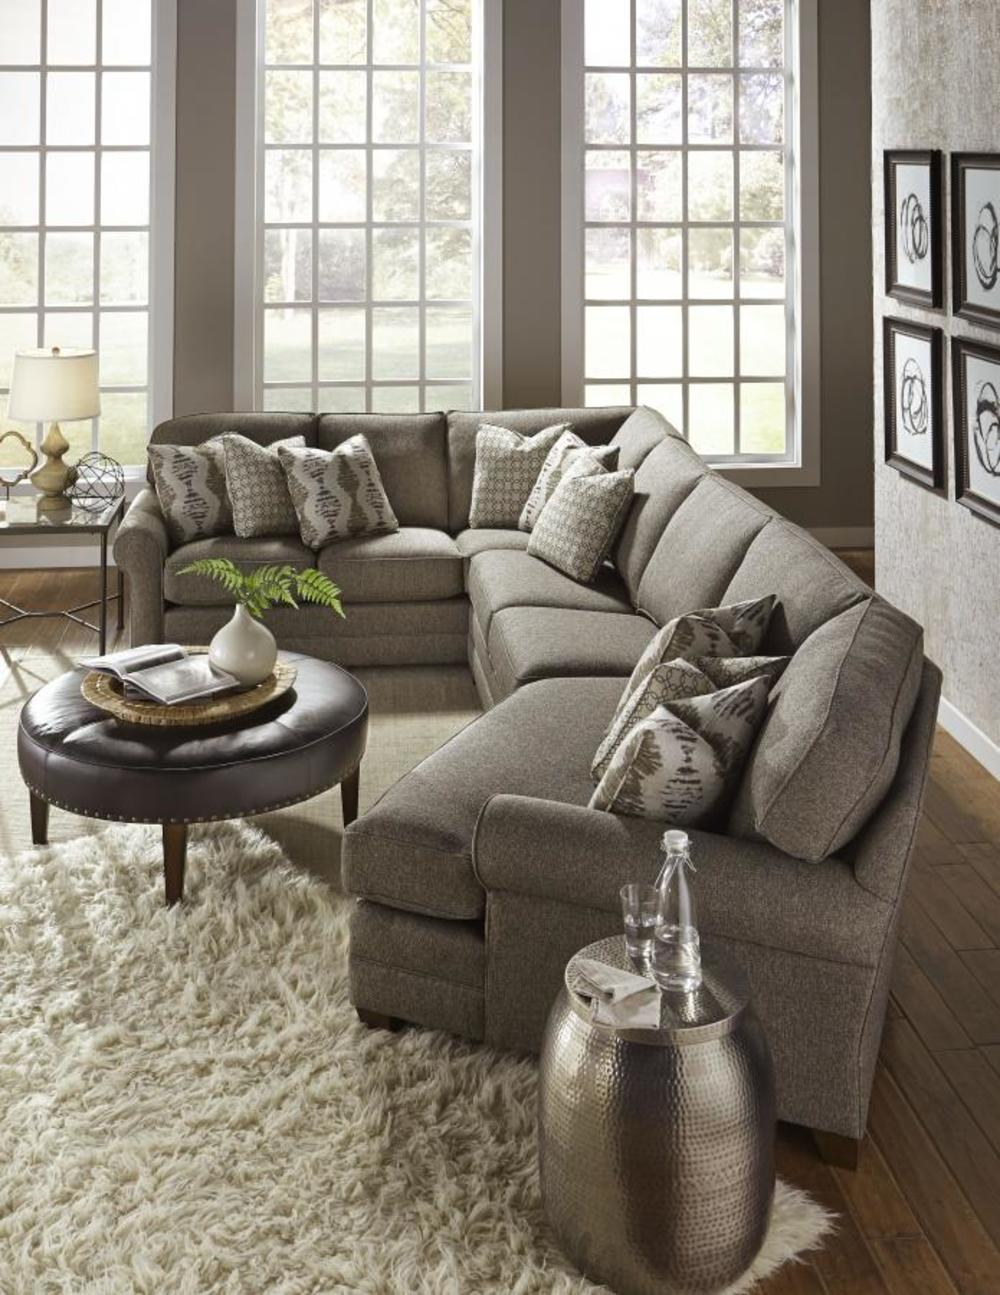 King Hickory - Winston Three Piece Sectional with Bumper